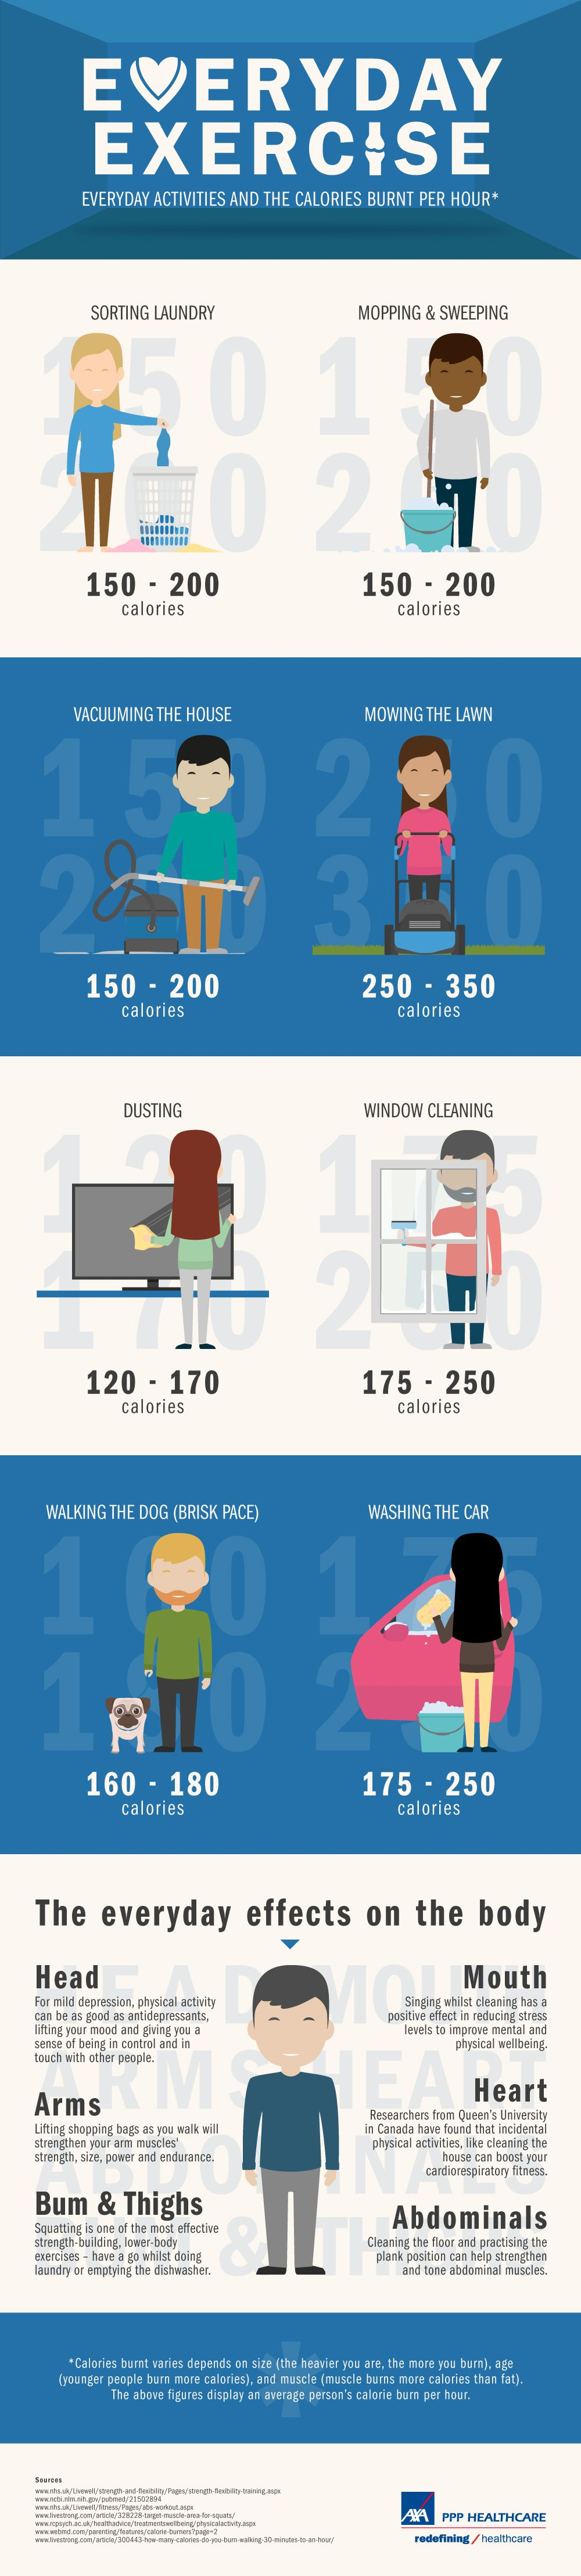 everyday-exercise-infographic